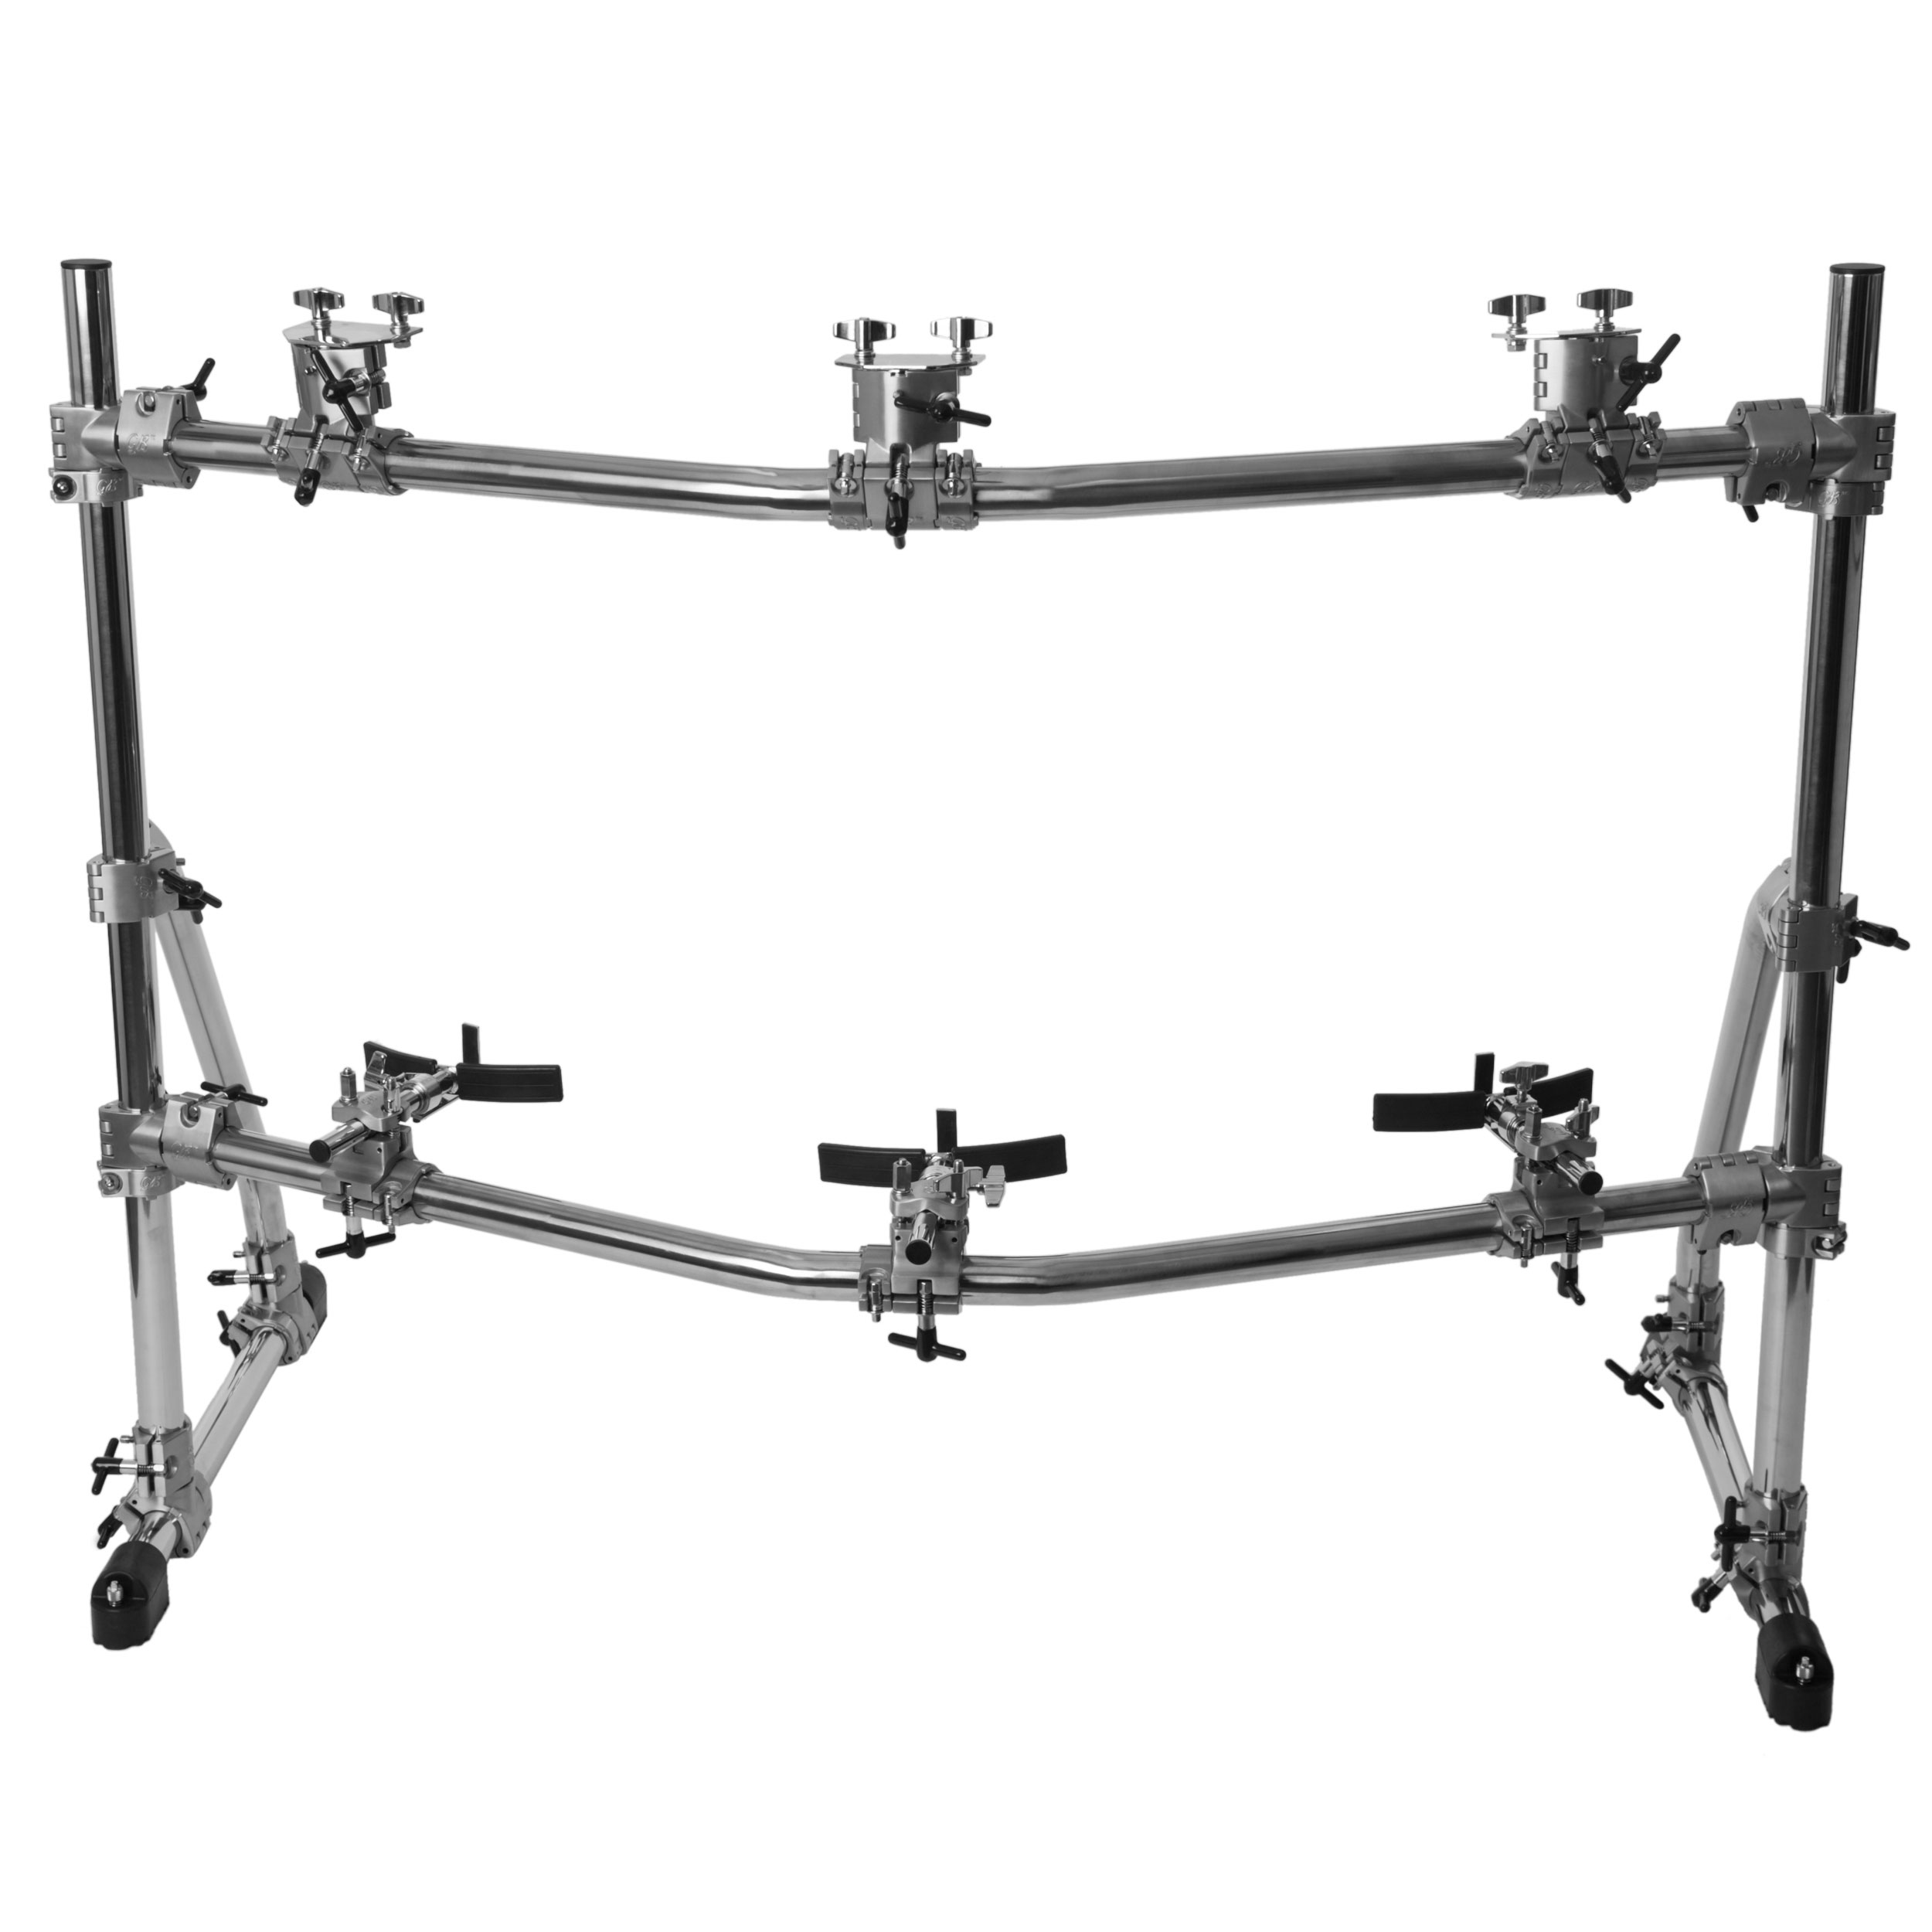 Gon Bops Complete Rack System for 3 Congas